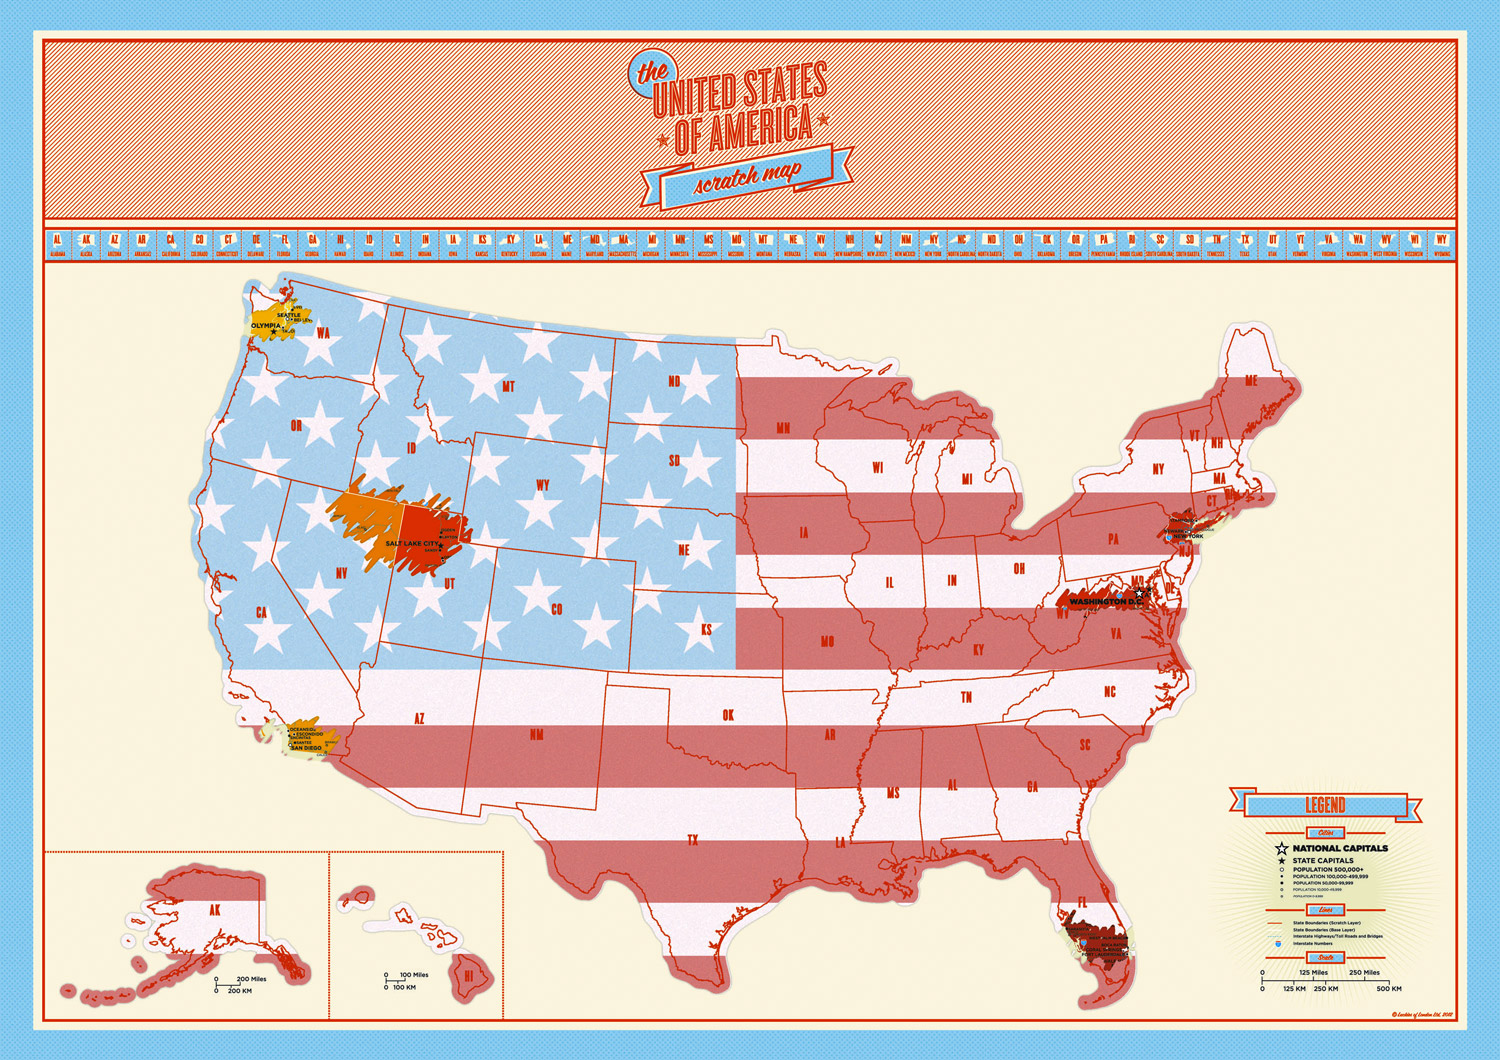 USA Scratch Map Track Your Travels With The Large Scratchoff Map - Us state map large